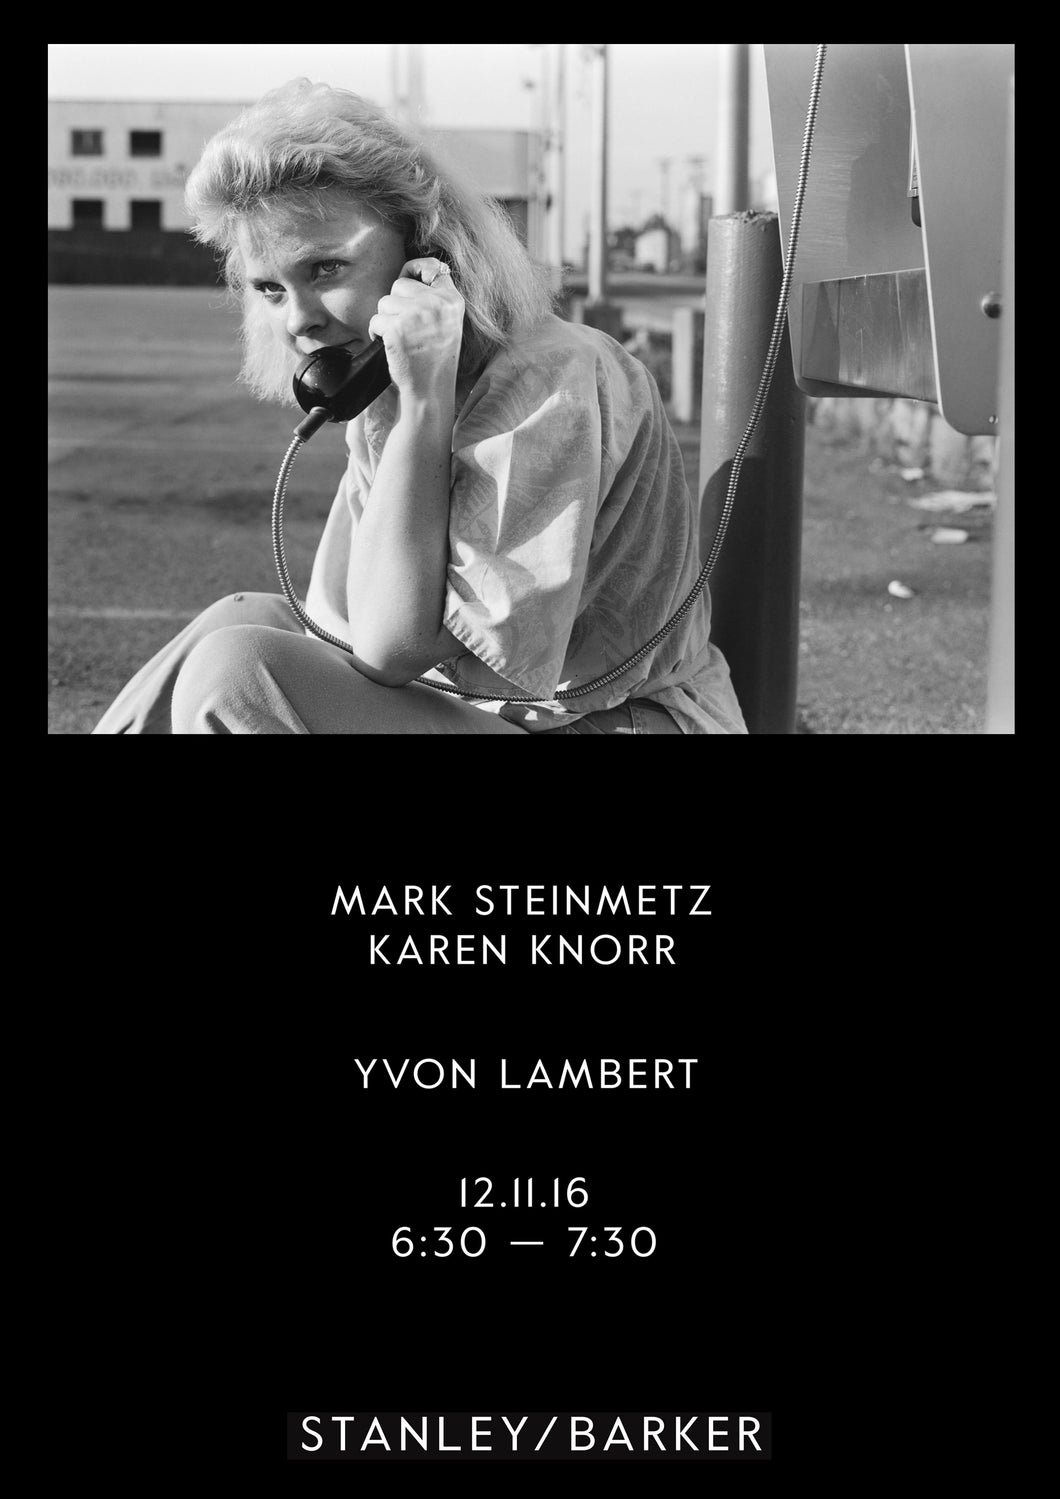 Mark Steinmetz & Karen Knorr - Book signings